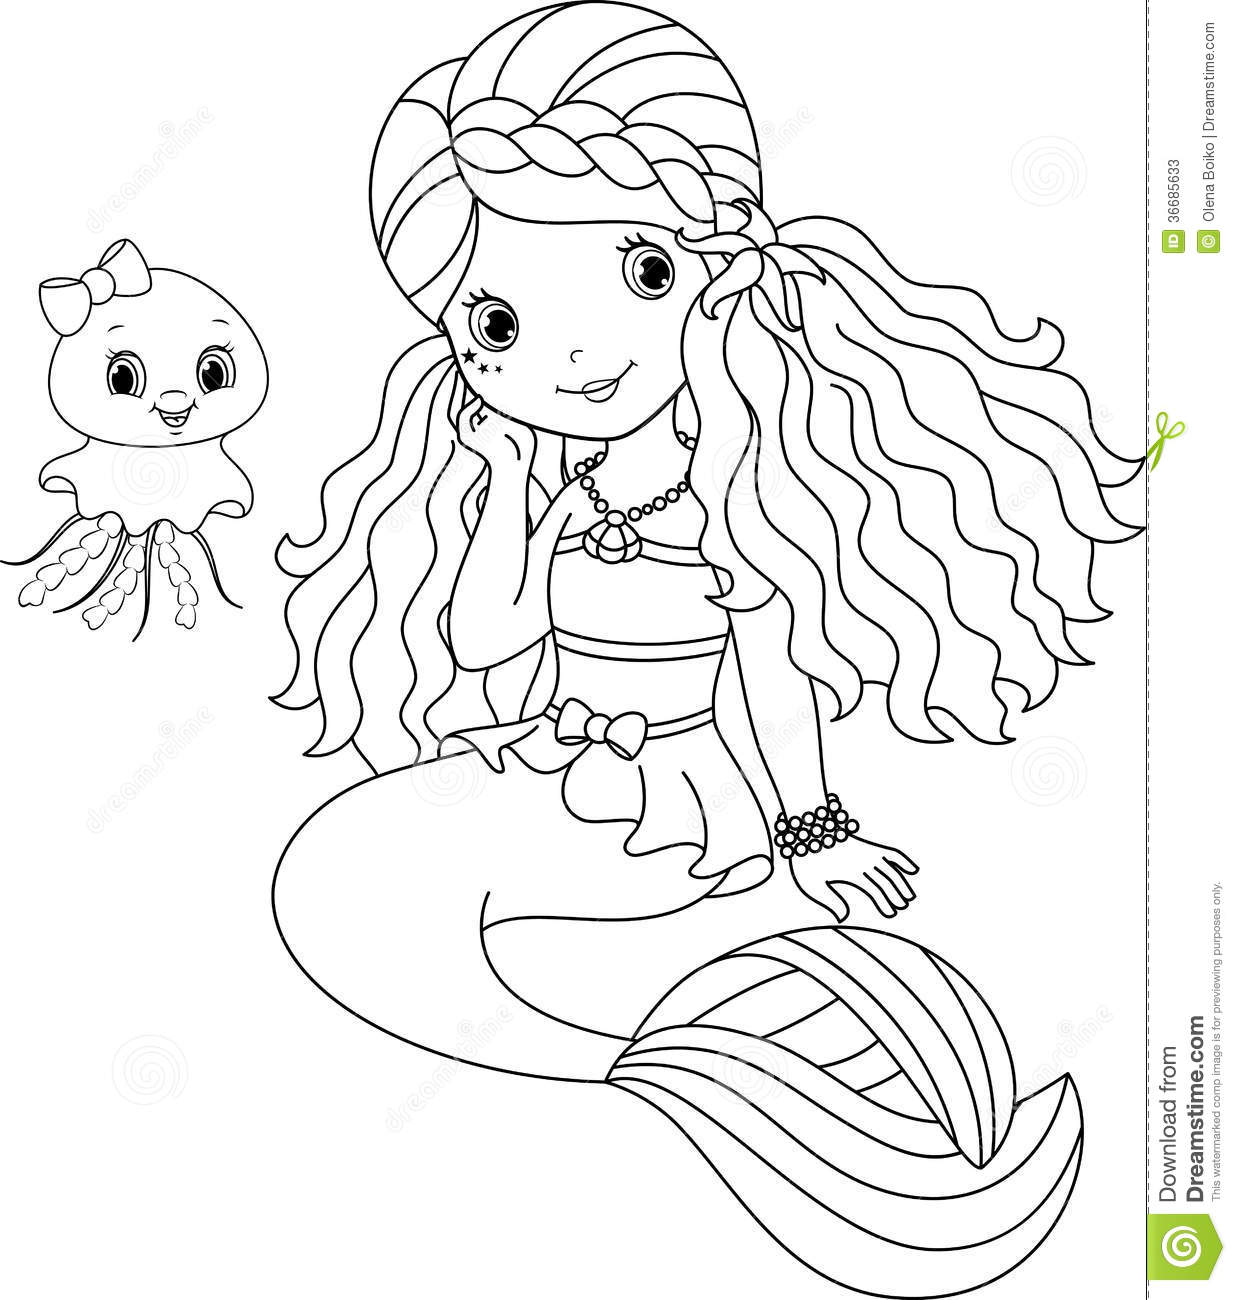 Cute Mermaid Tail Drawing at GetDrawings.com | Free for personal use ...